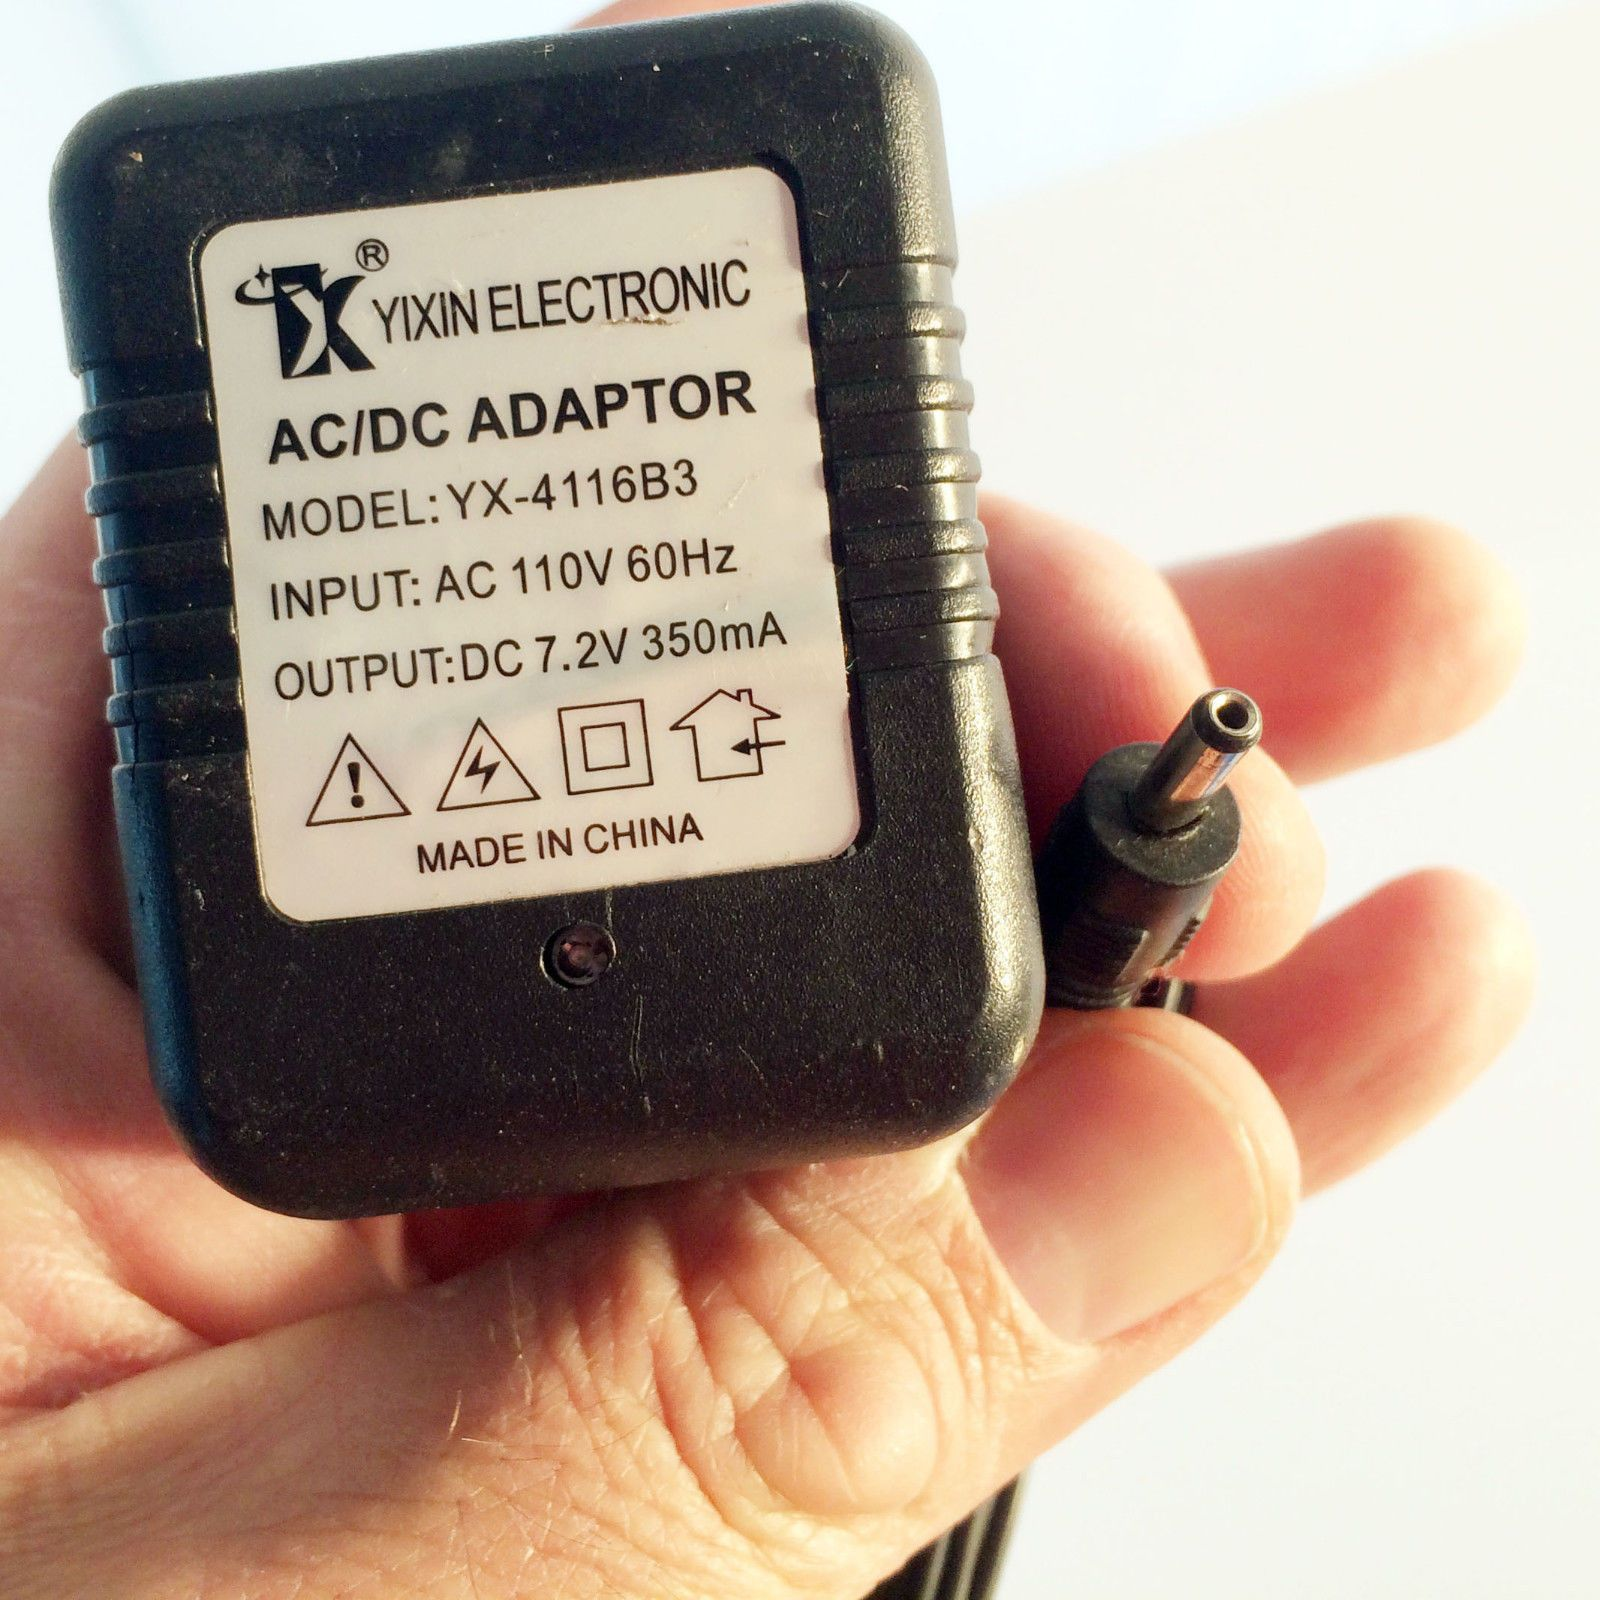 Yx 4116b3 Dc 7 2v 250ma Battery Charger Power Supply